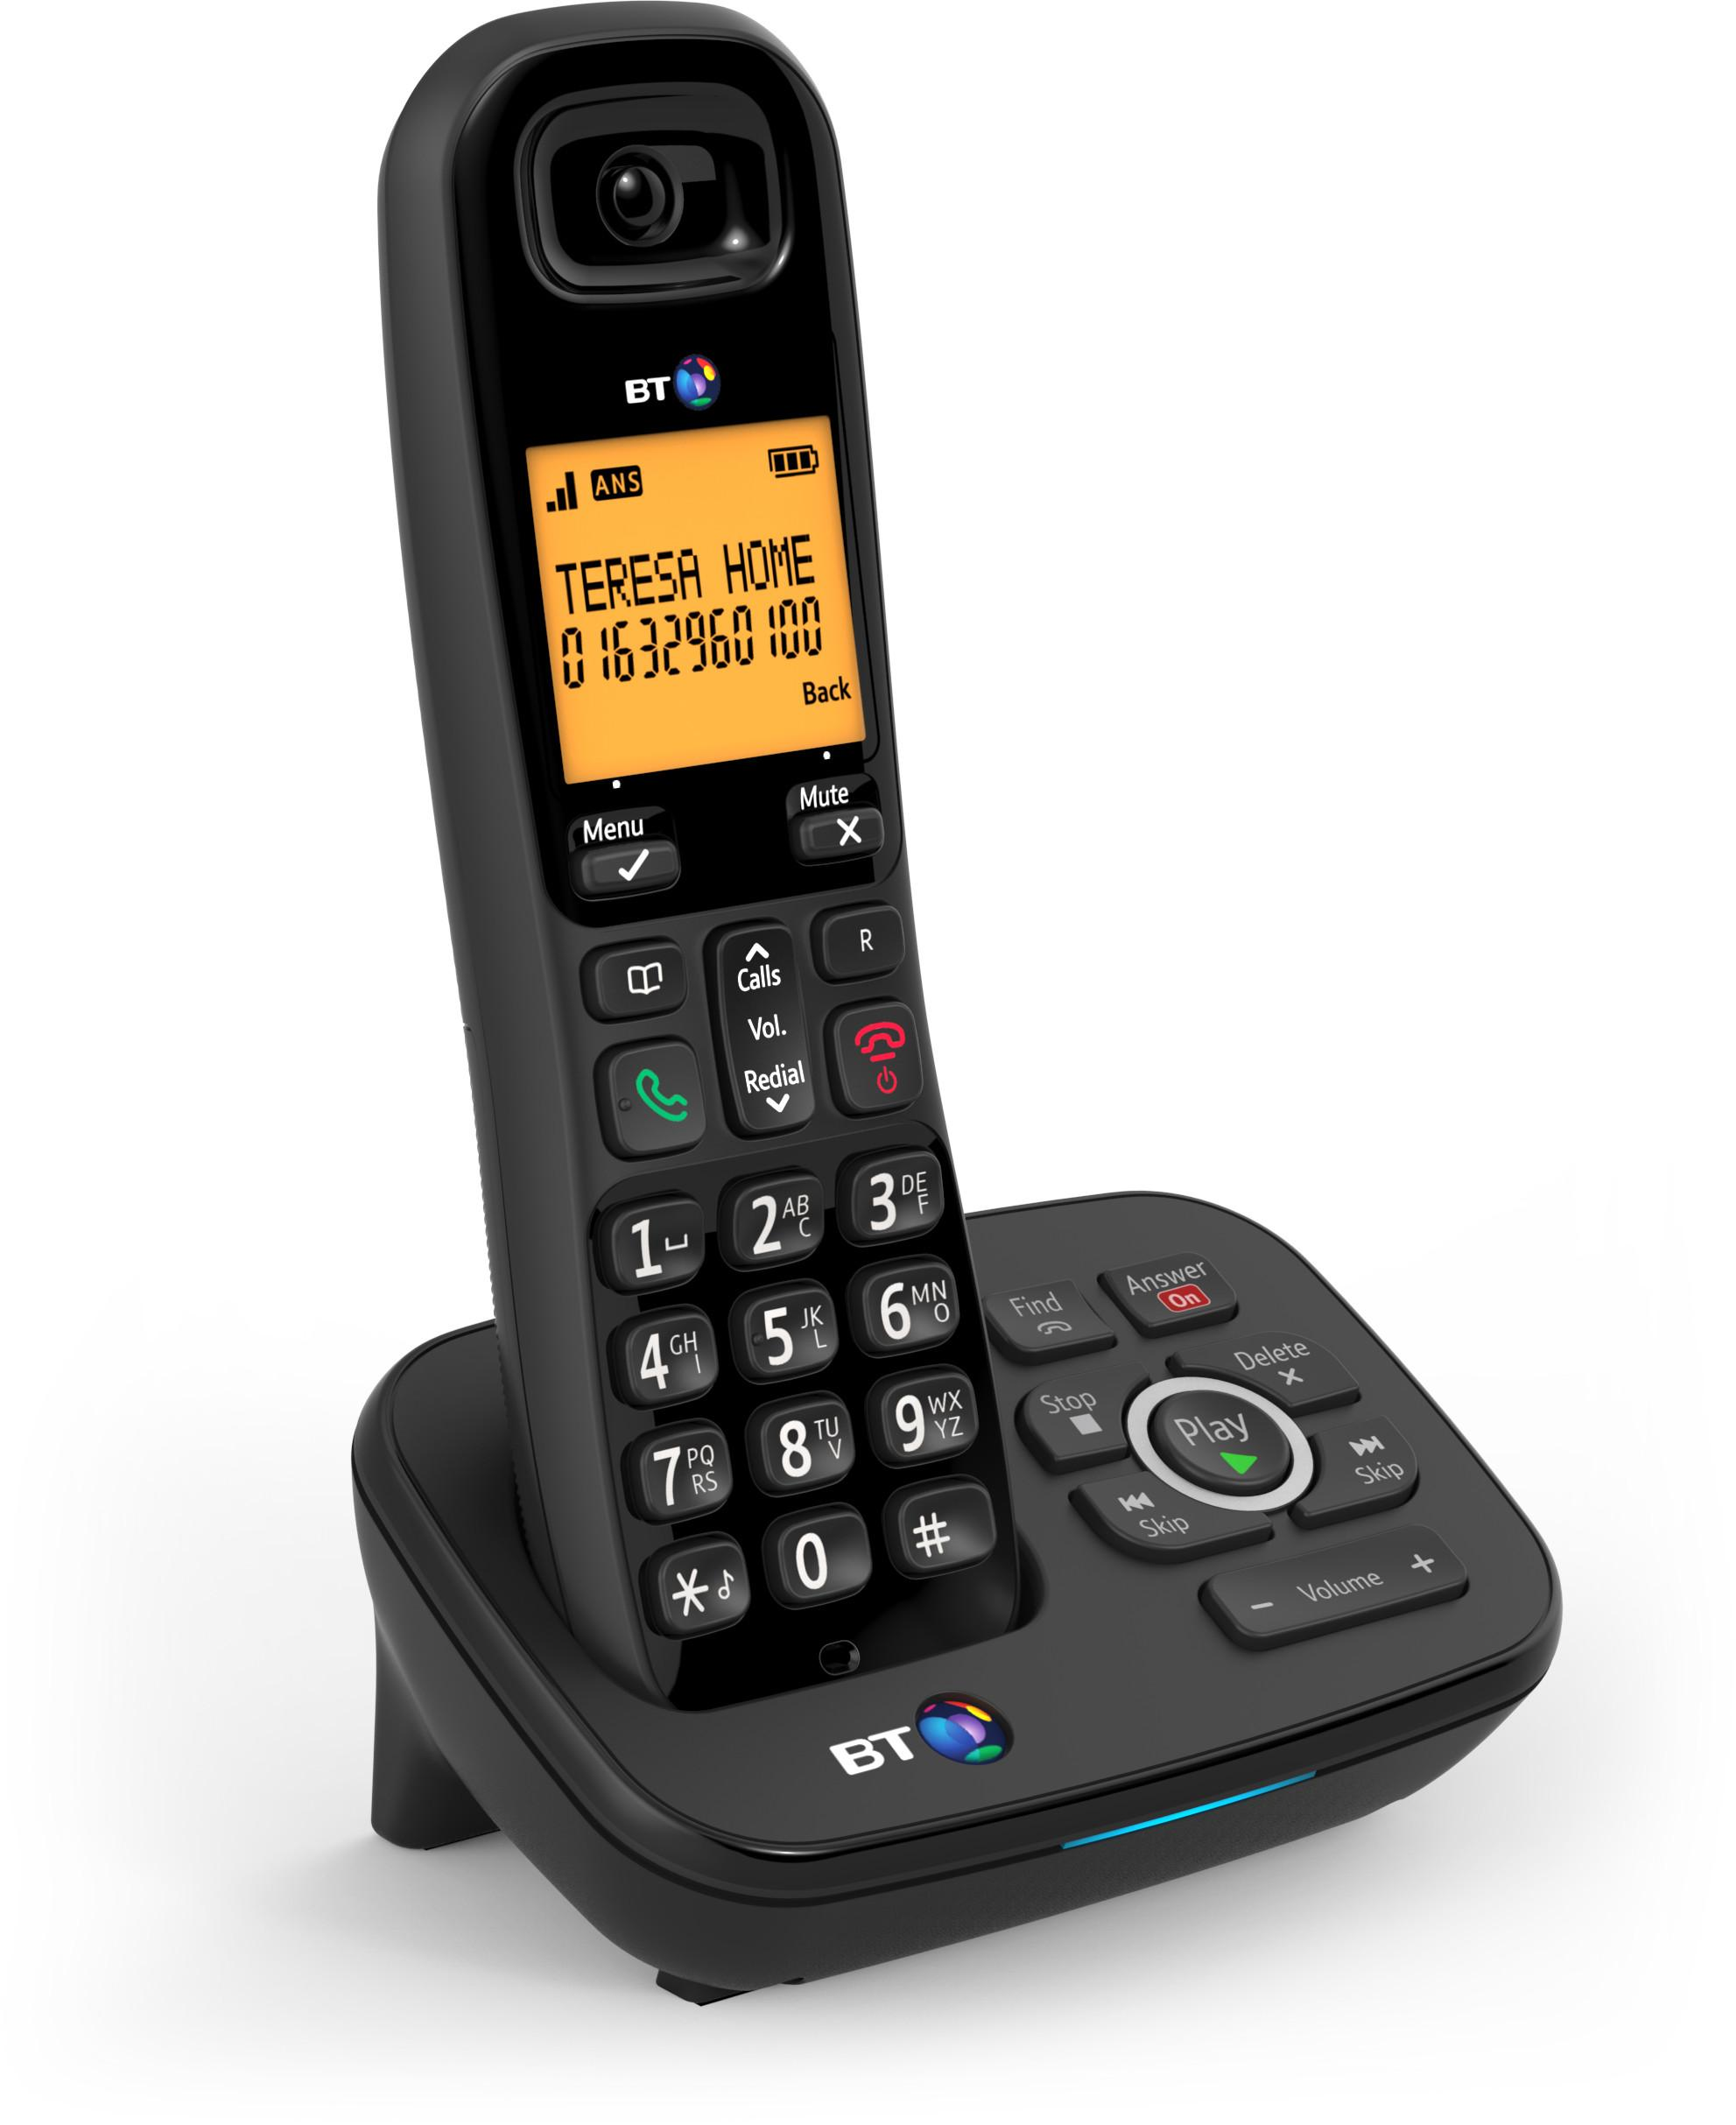 Bt 1700 Nuisance Call Blocker Cordless Home Phone With Answer Machine